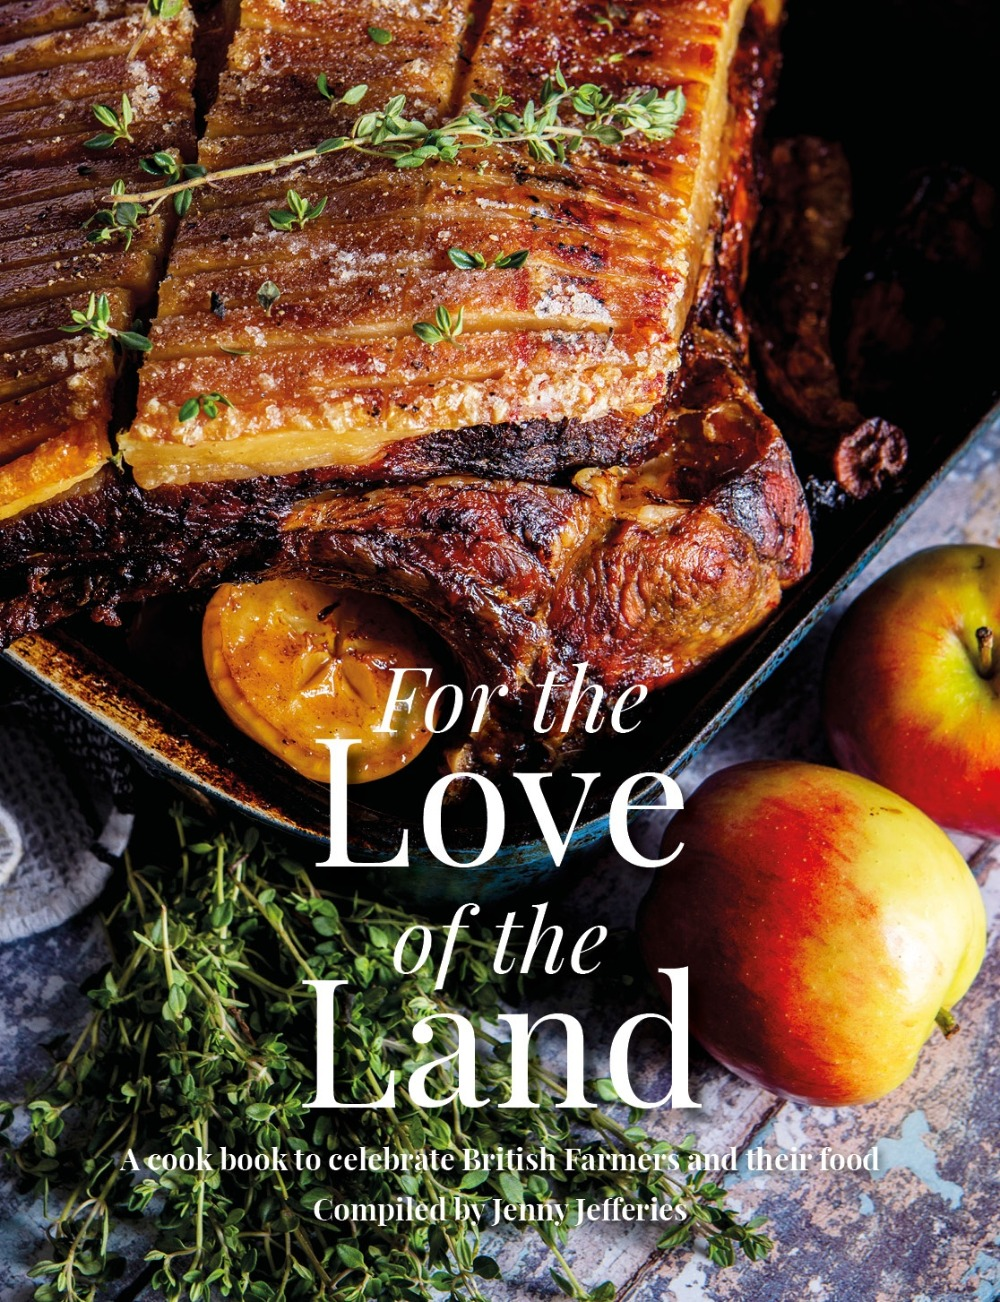 For Love of the Land book cover